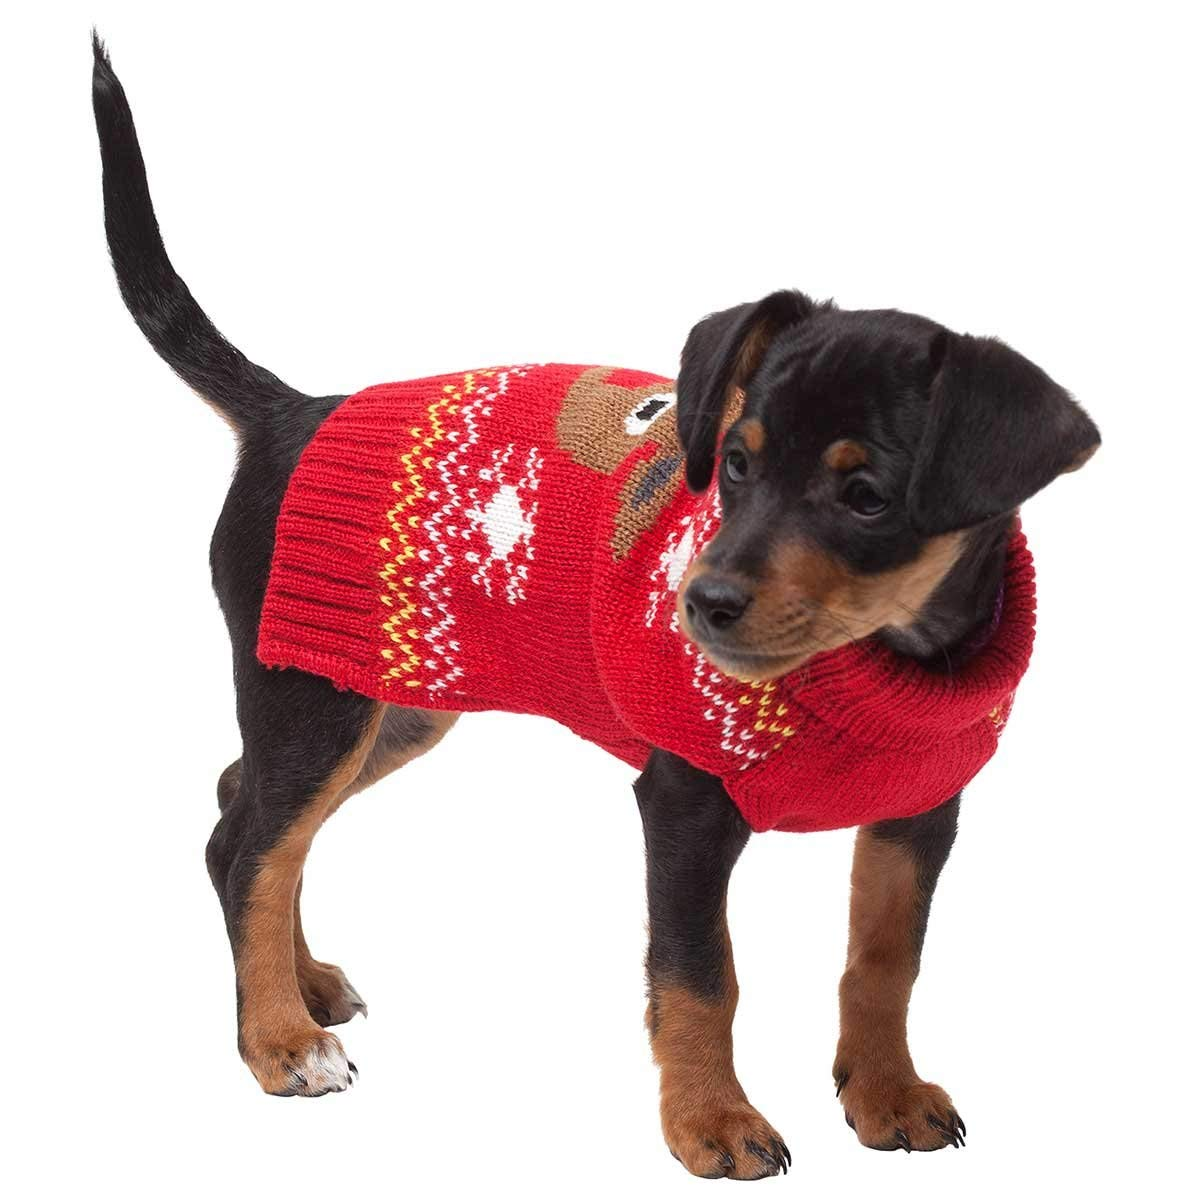 trezo paws red reindeer pet christmas sweater large - Large Dog Christmas Sweaters